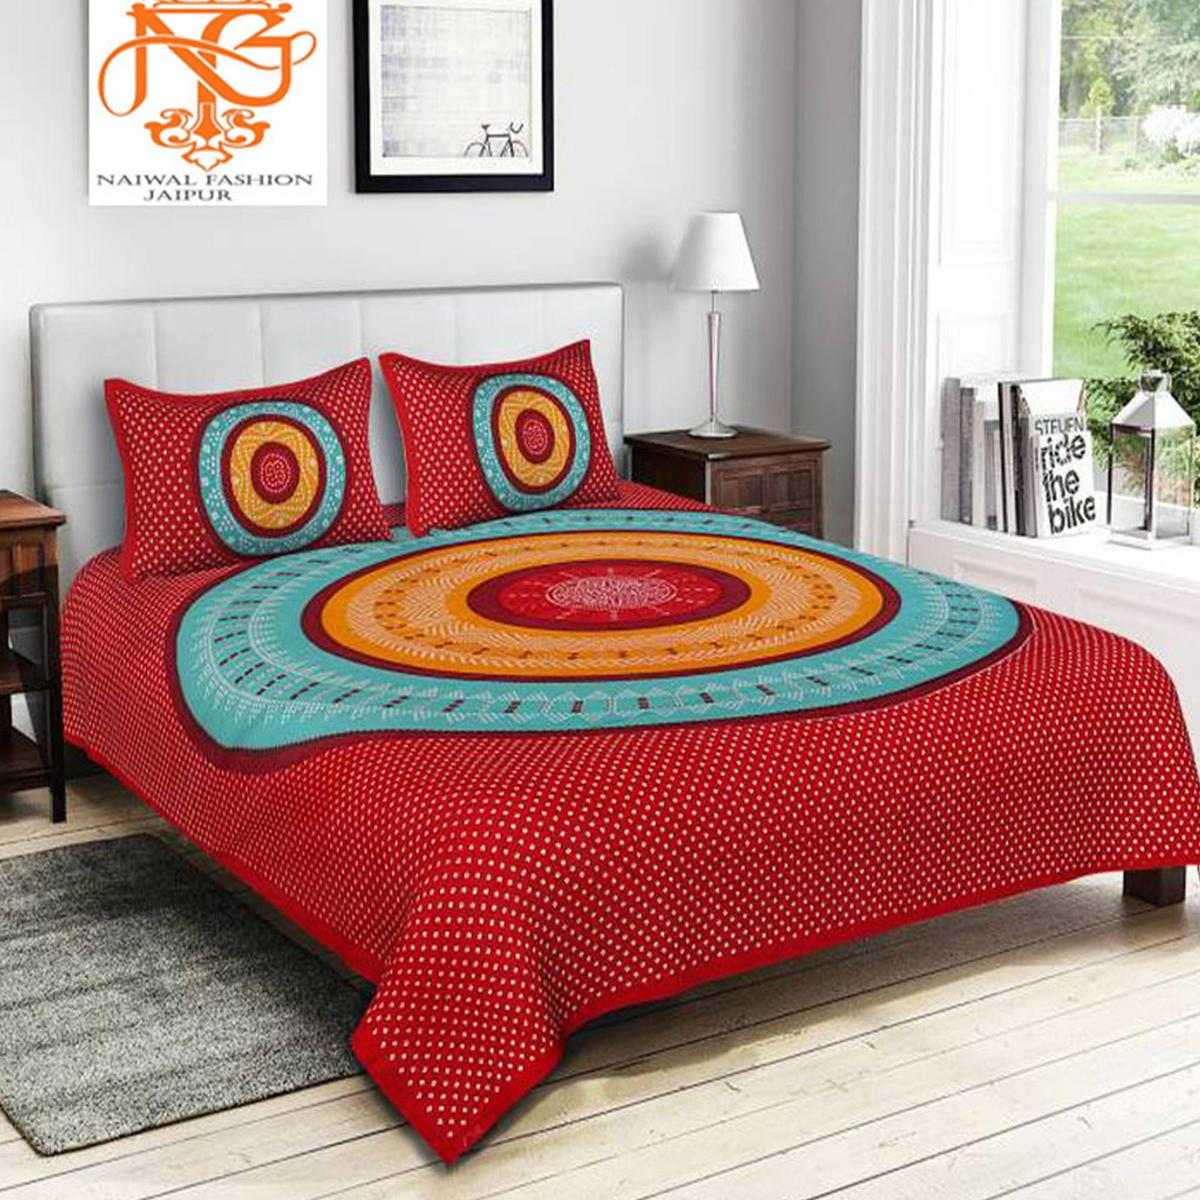 Bhagats - Red and Blue Colored Printed Cotton Double Bedsheet with 2 Pillow Cover